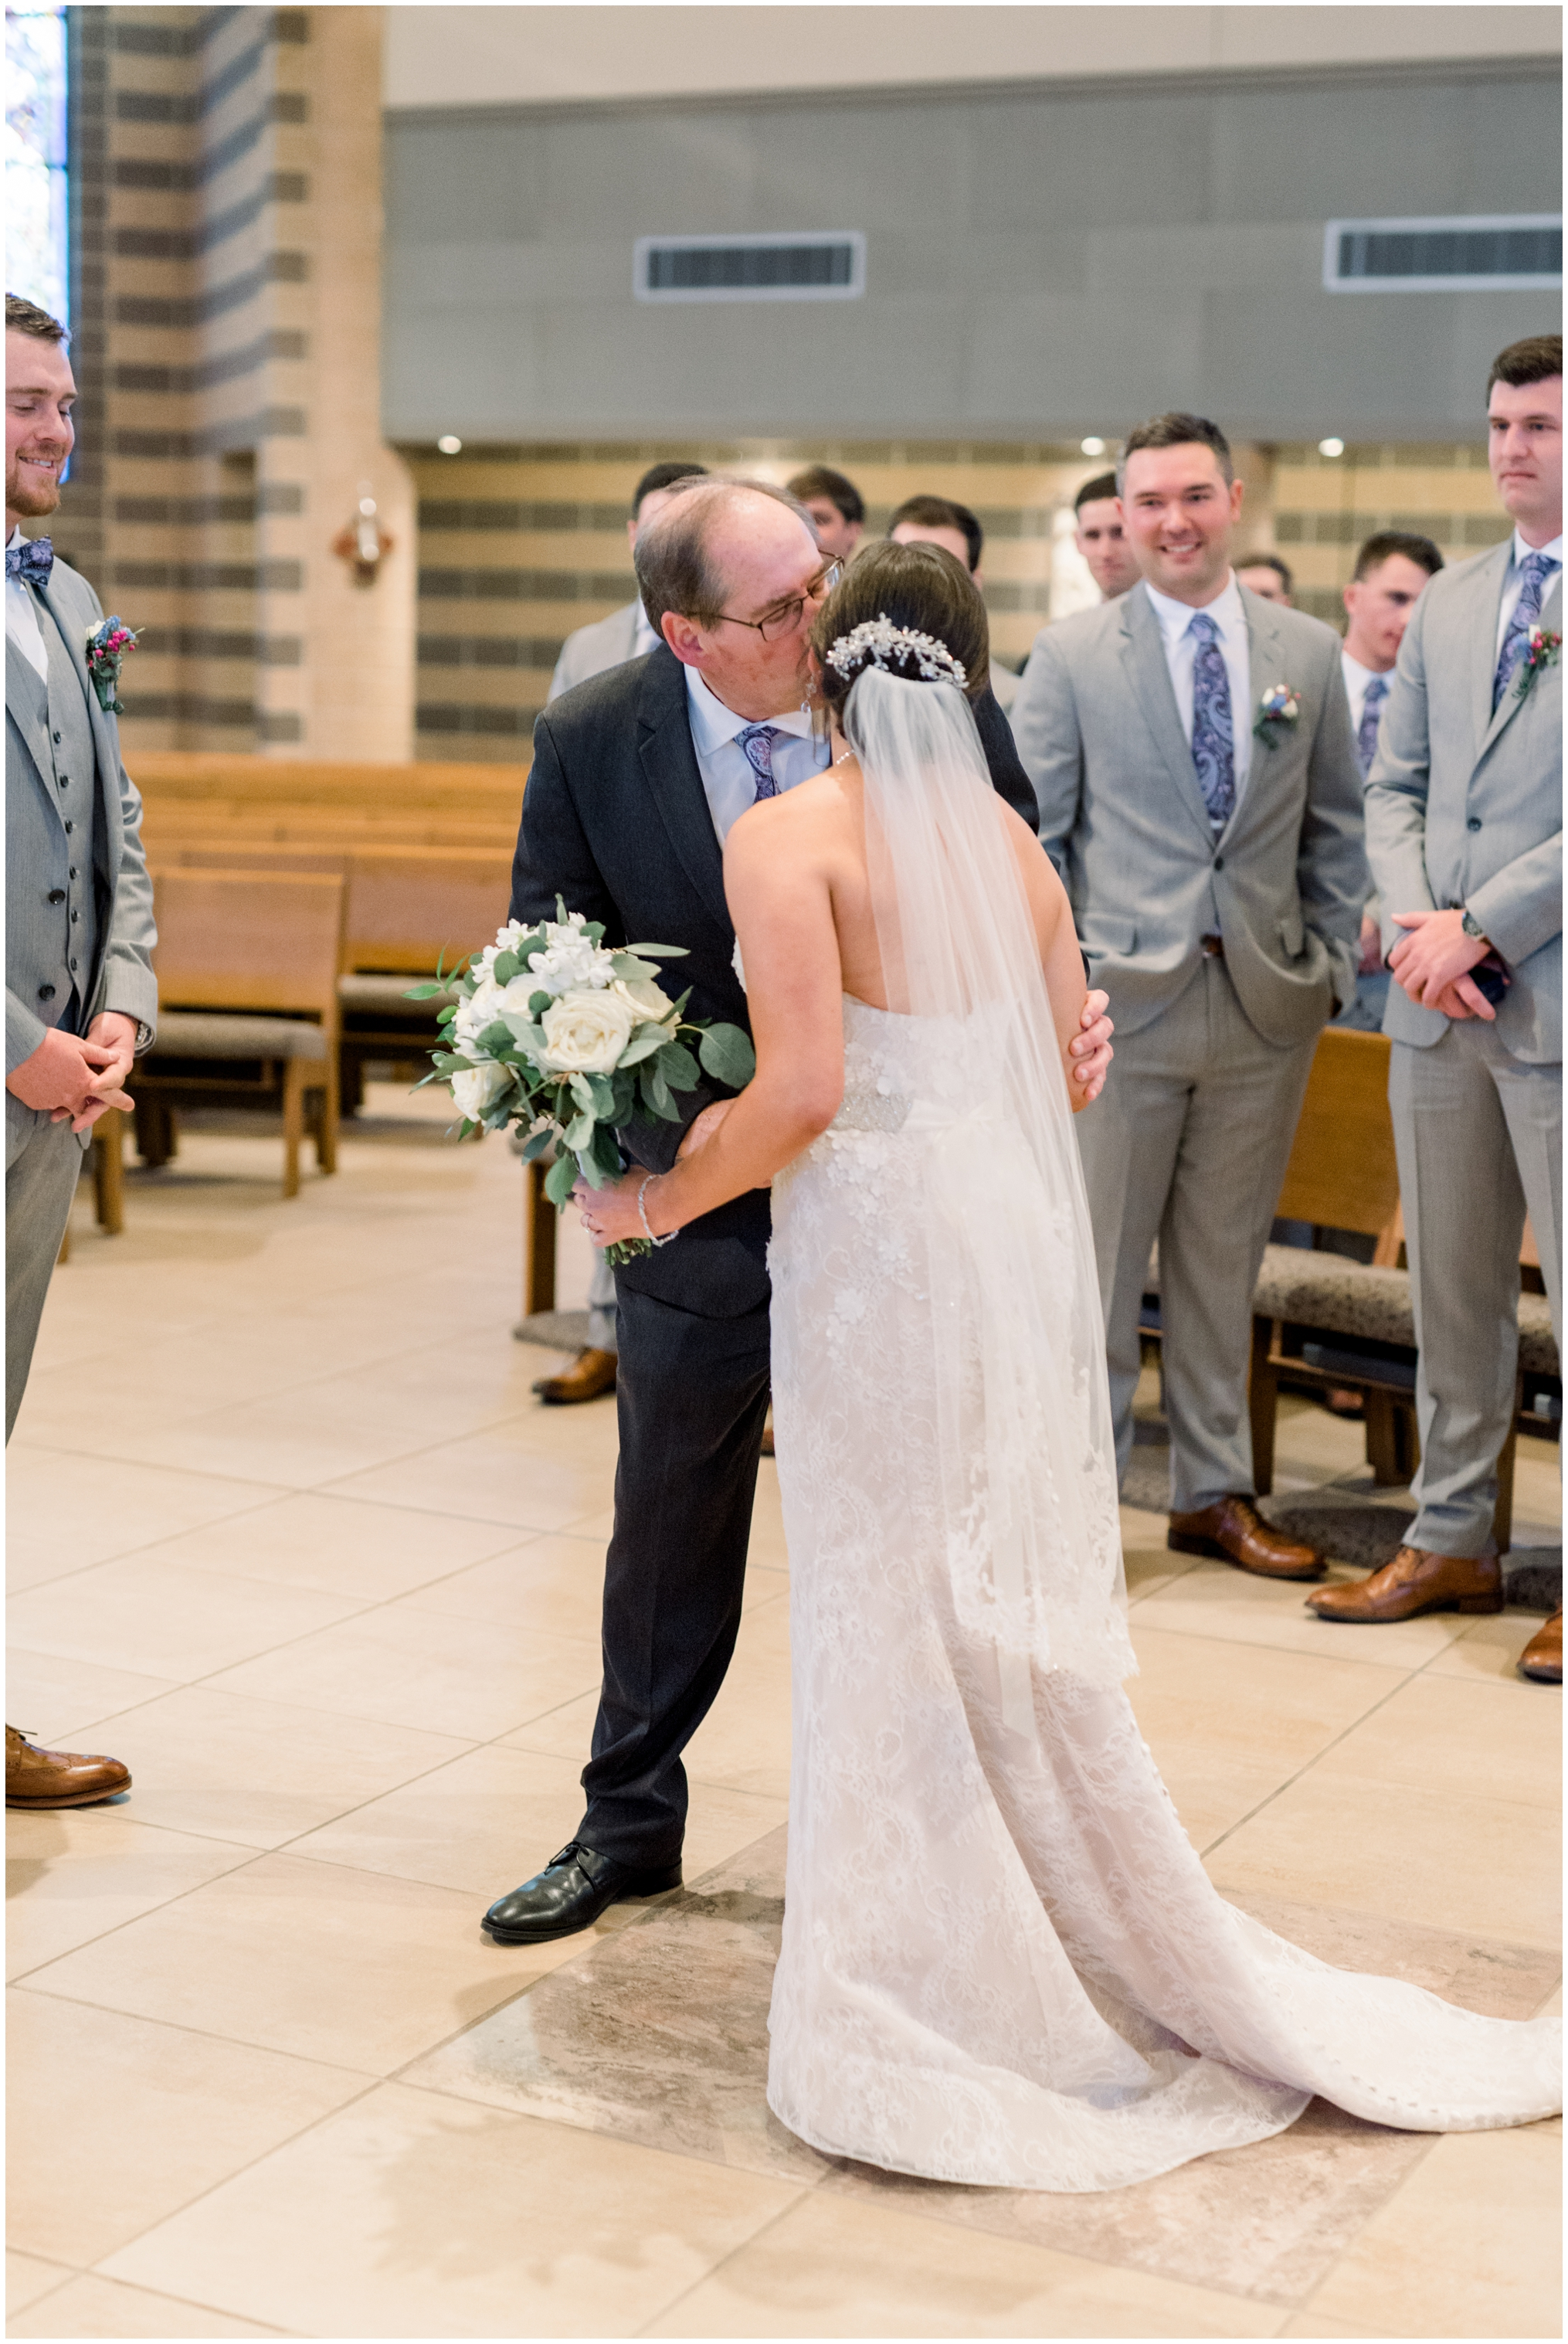 Krista Brackin Photography | April Wedding at The Carriage House at Rockwood Park_0044.jpg